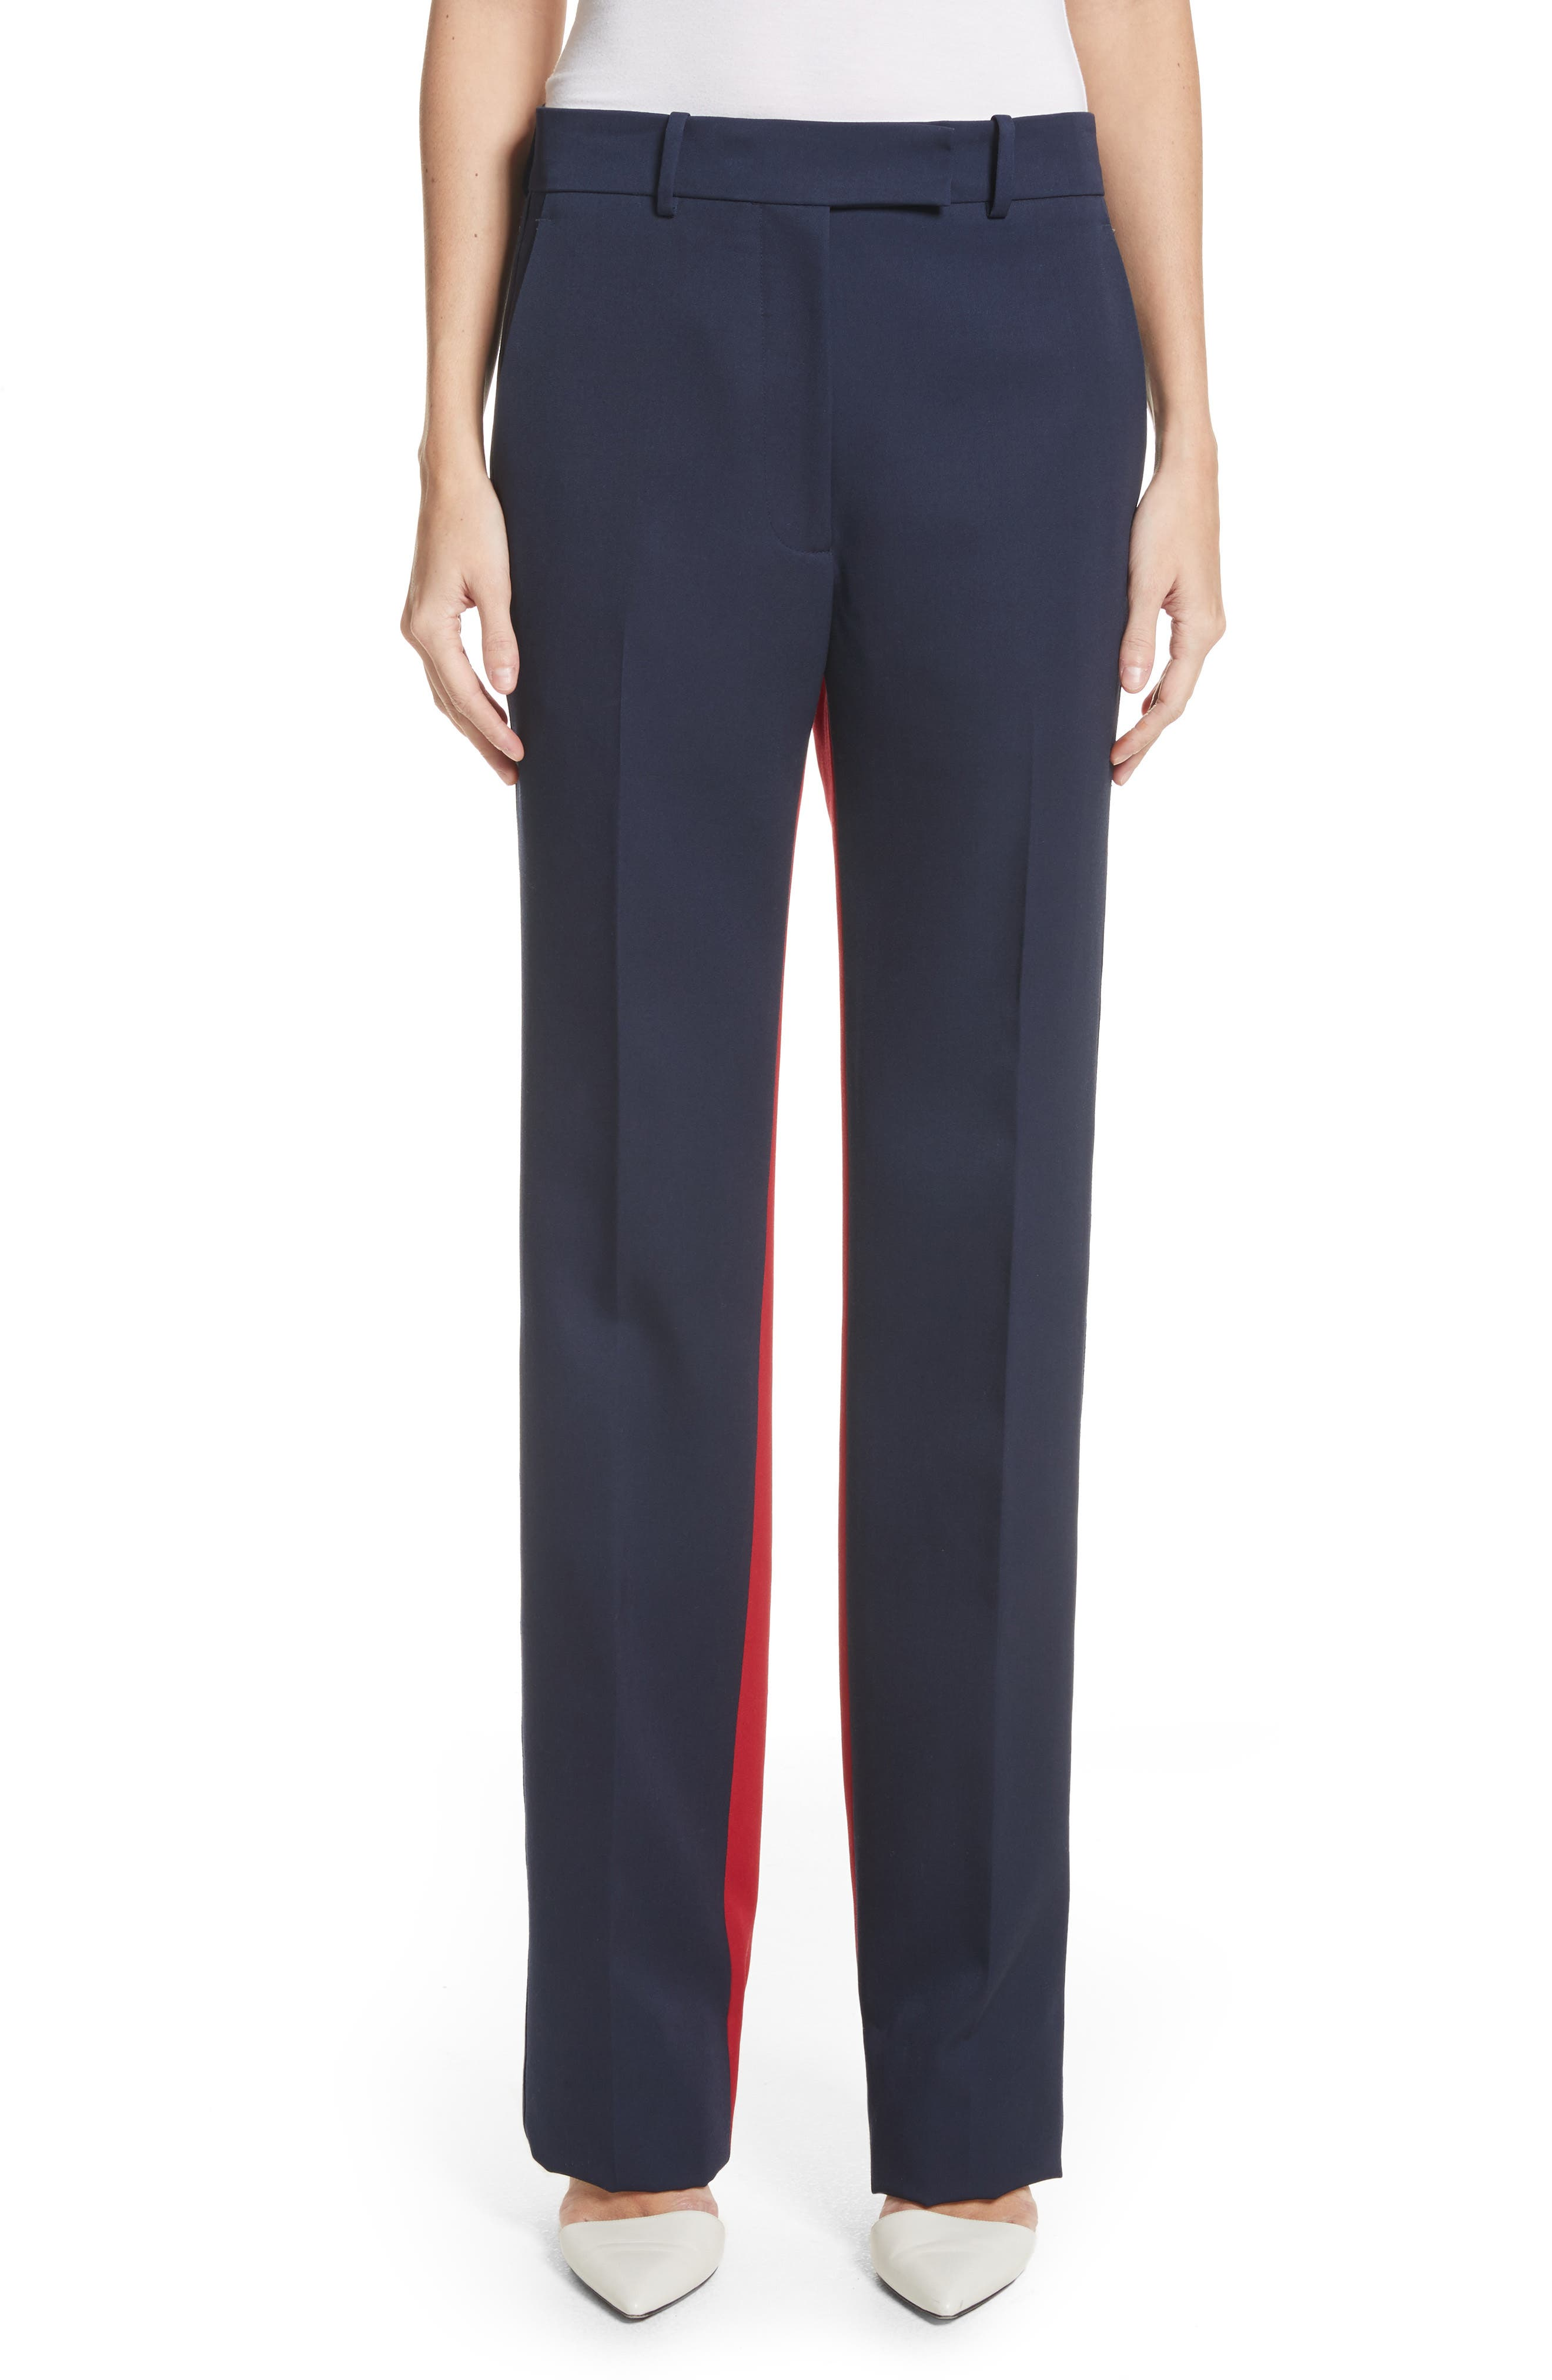 Main Image - CALVIN KLEIN 205W39NYC Colorblock Wool Trousers